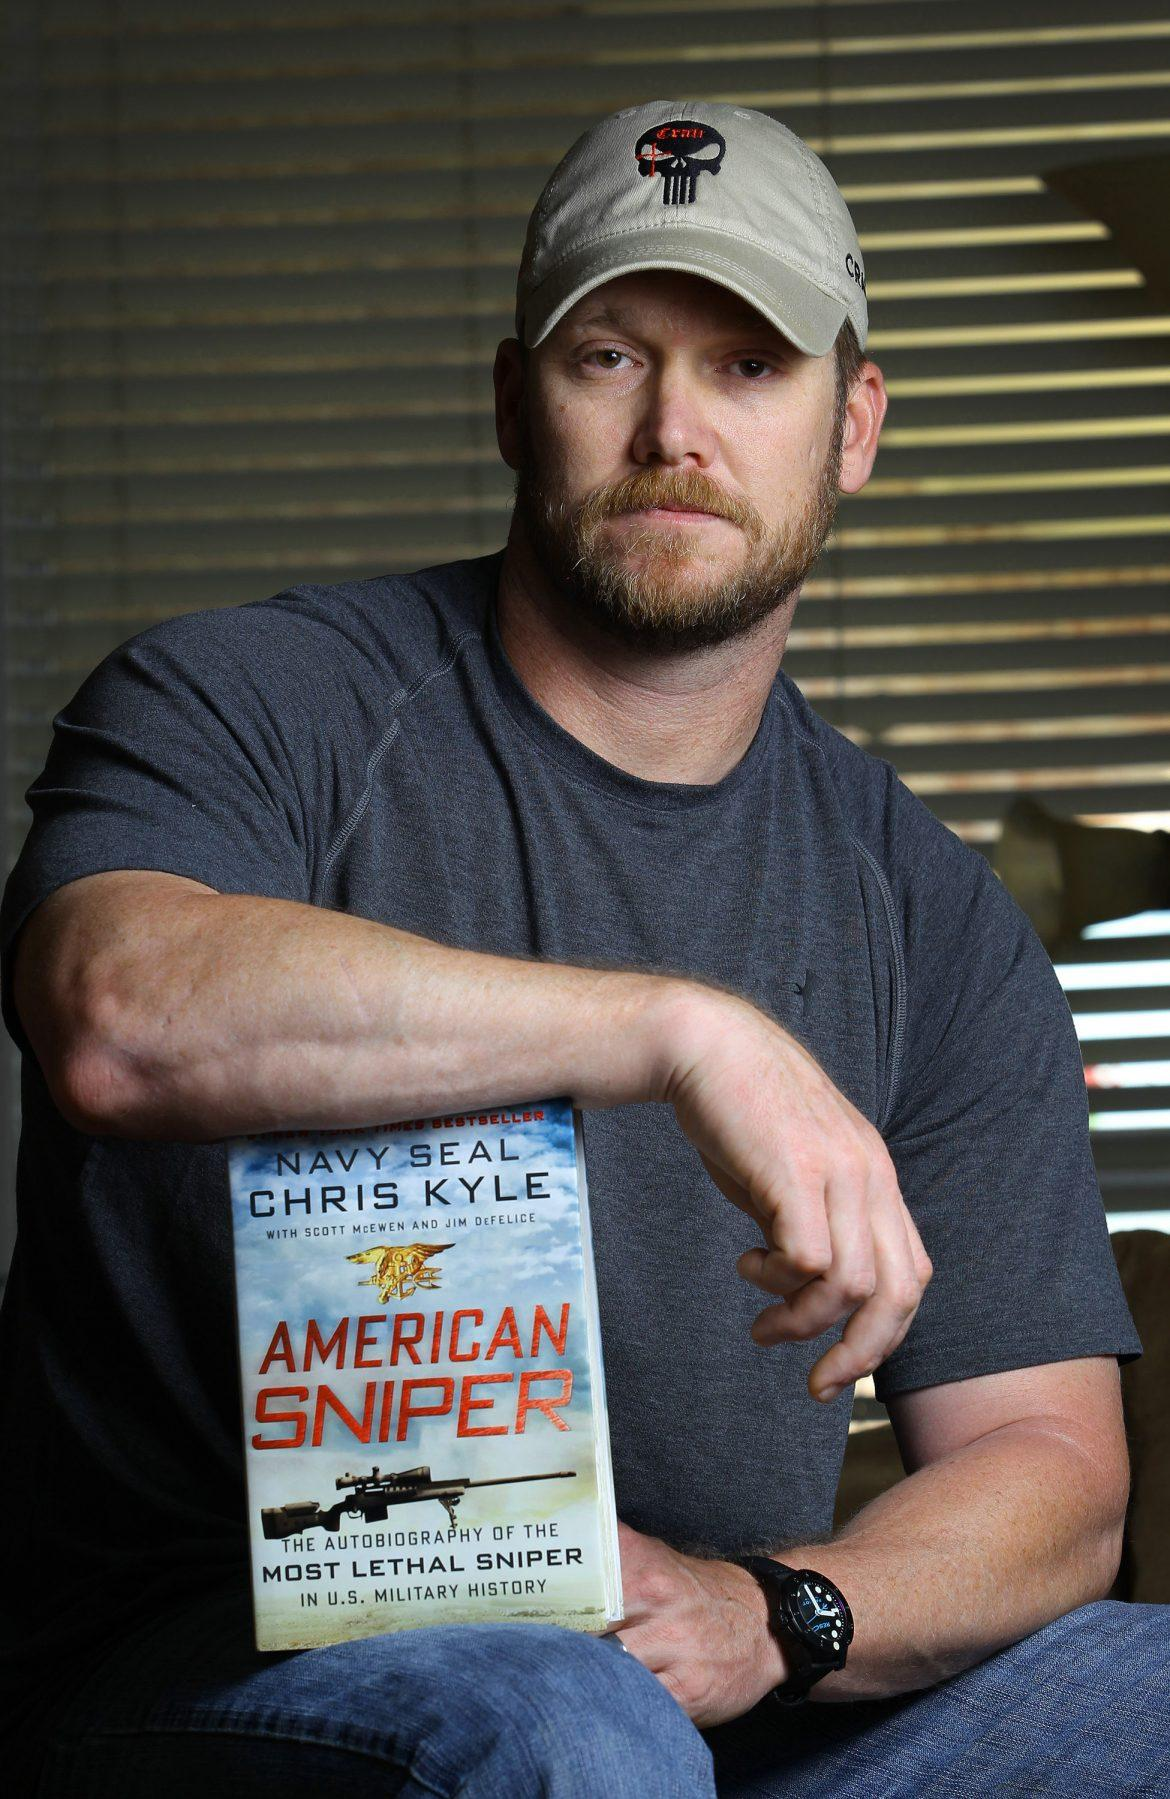 Chris Kyle, a retired Navy SEAL and bestselling author of the book